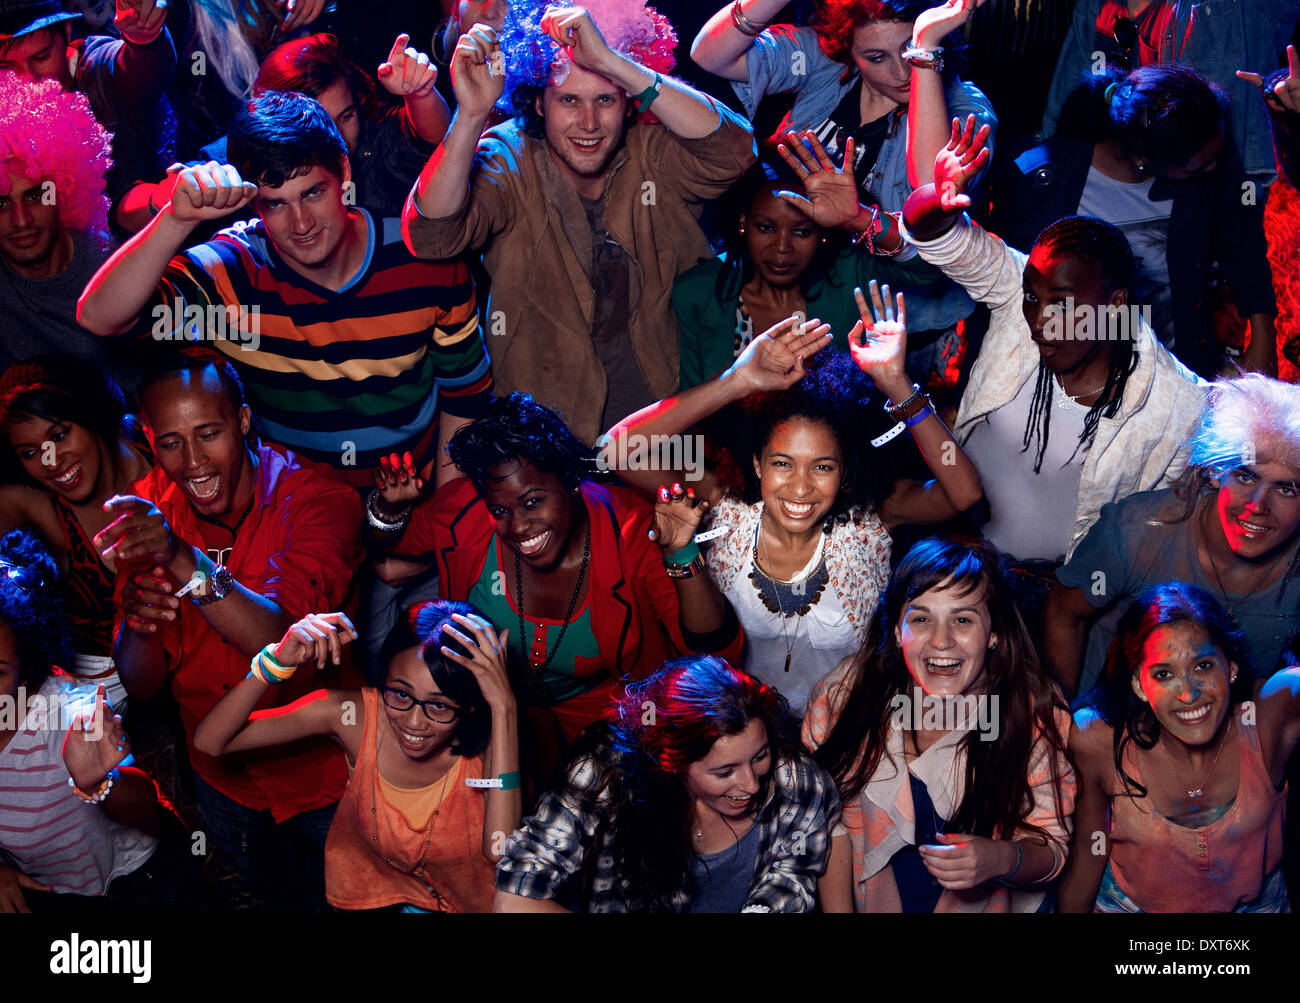 Fans cheering at music festival Stock Photo